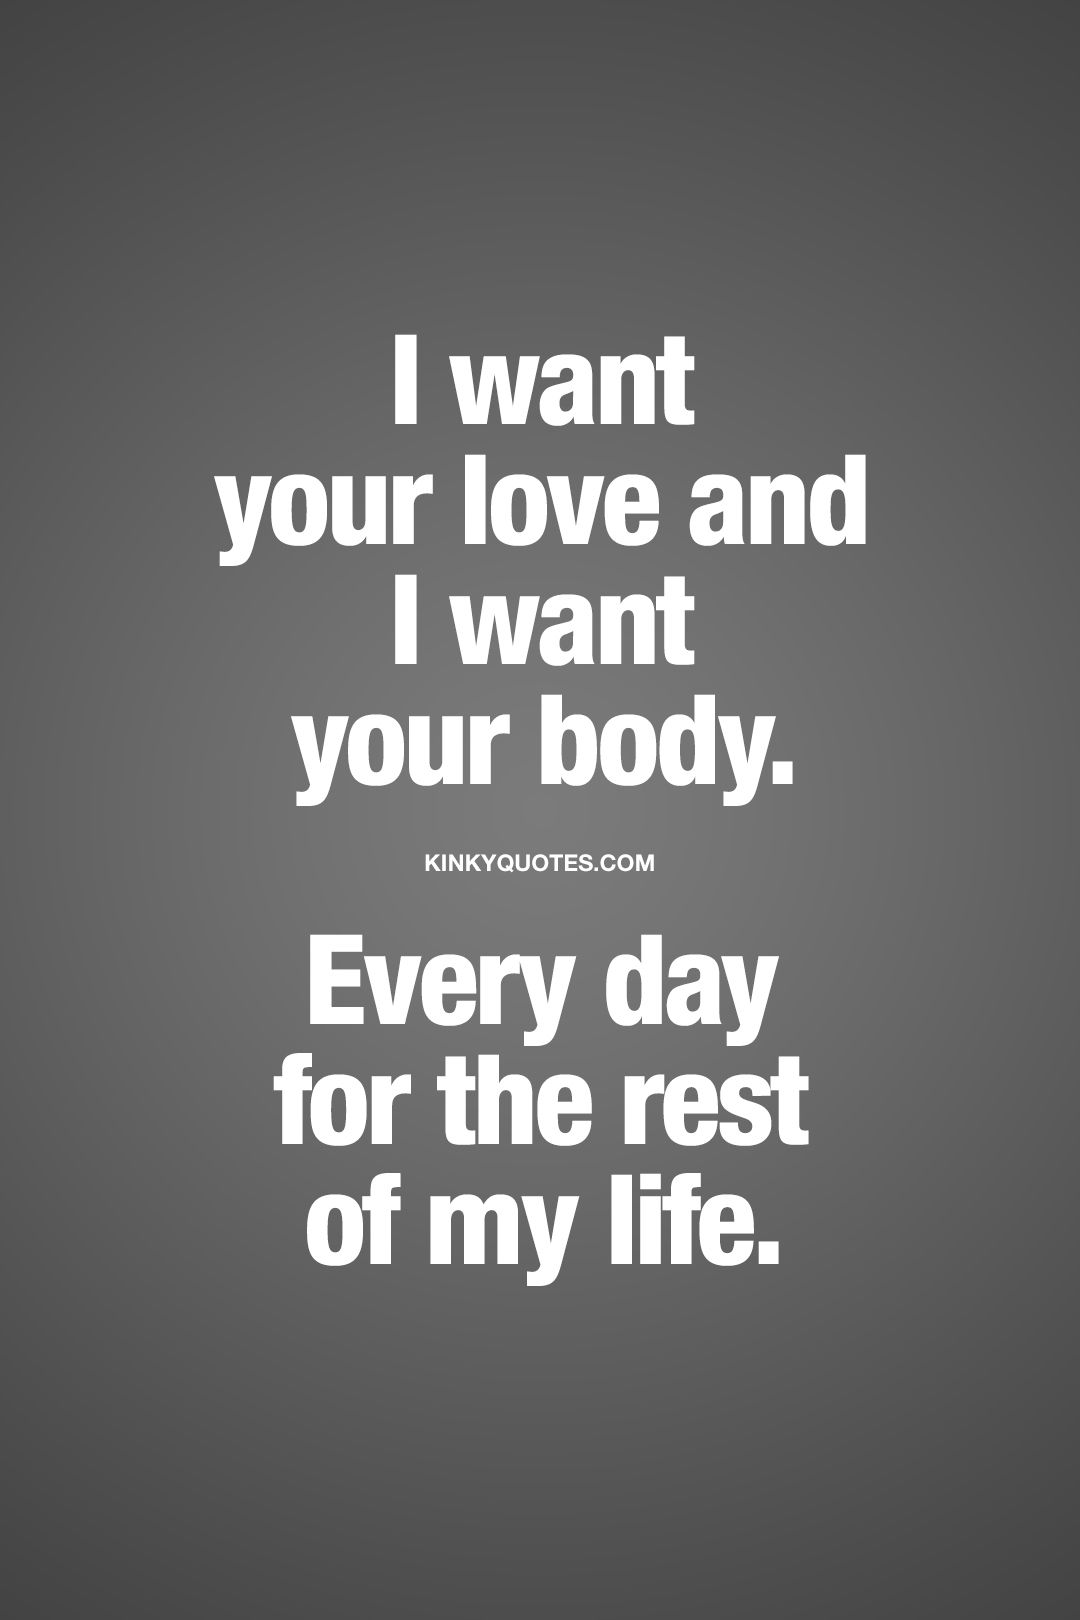 I want your love and I want your body. Every day for the rest of my life. | It's all about that true, real and deep love you can feel for someone. It's all about that deep and intense desire you can feel for someone you love. When you want all of him or her for the rest of your life. | #love #desire #passion #quote www.kinkyquotes.como